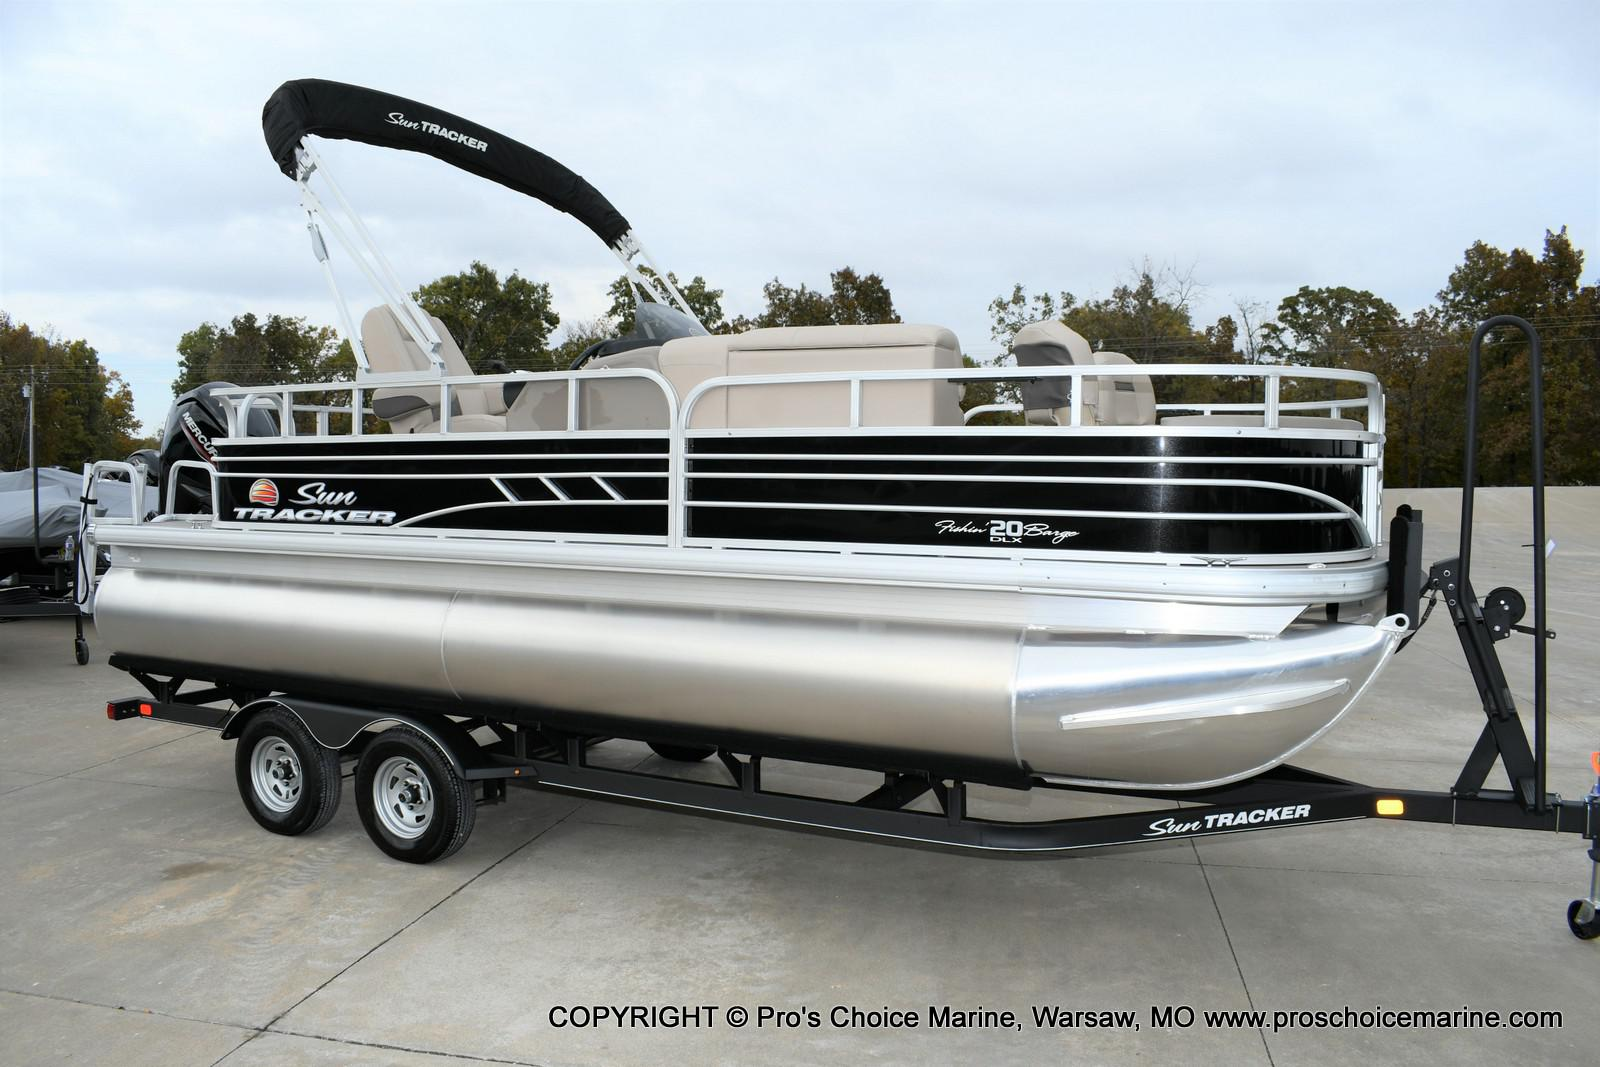 2020 Sun Tracker boat for sale, model of the boat is Fishin' Barge 20 DLX & Image # 37 of 50